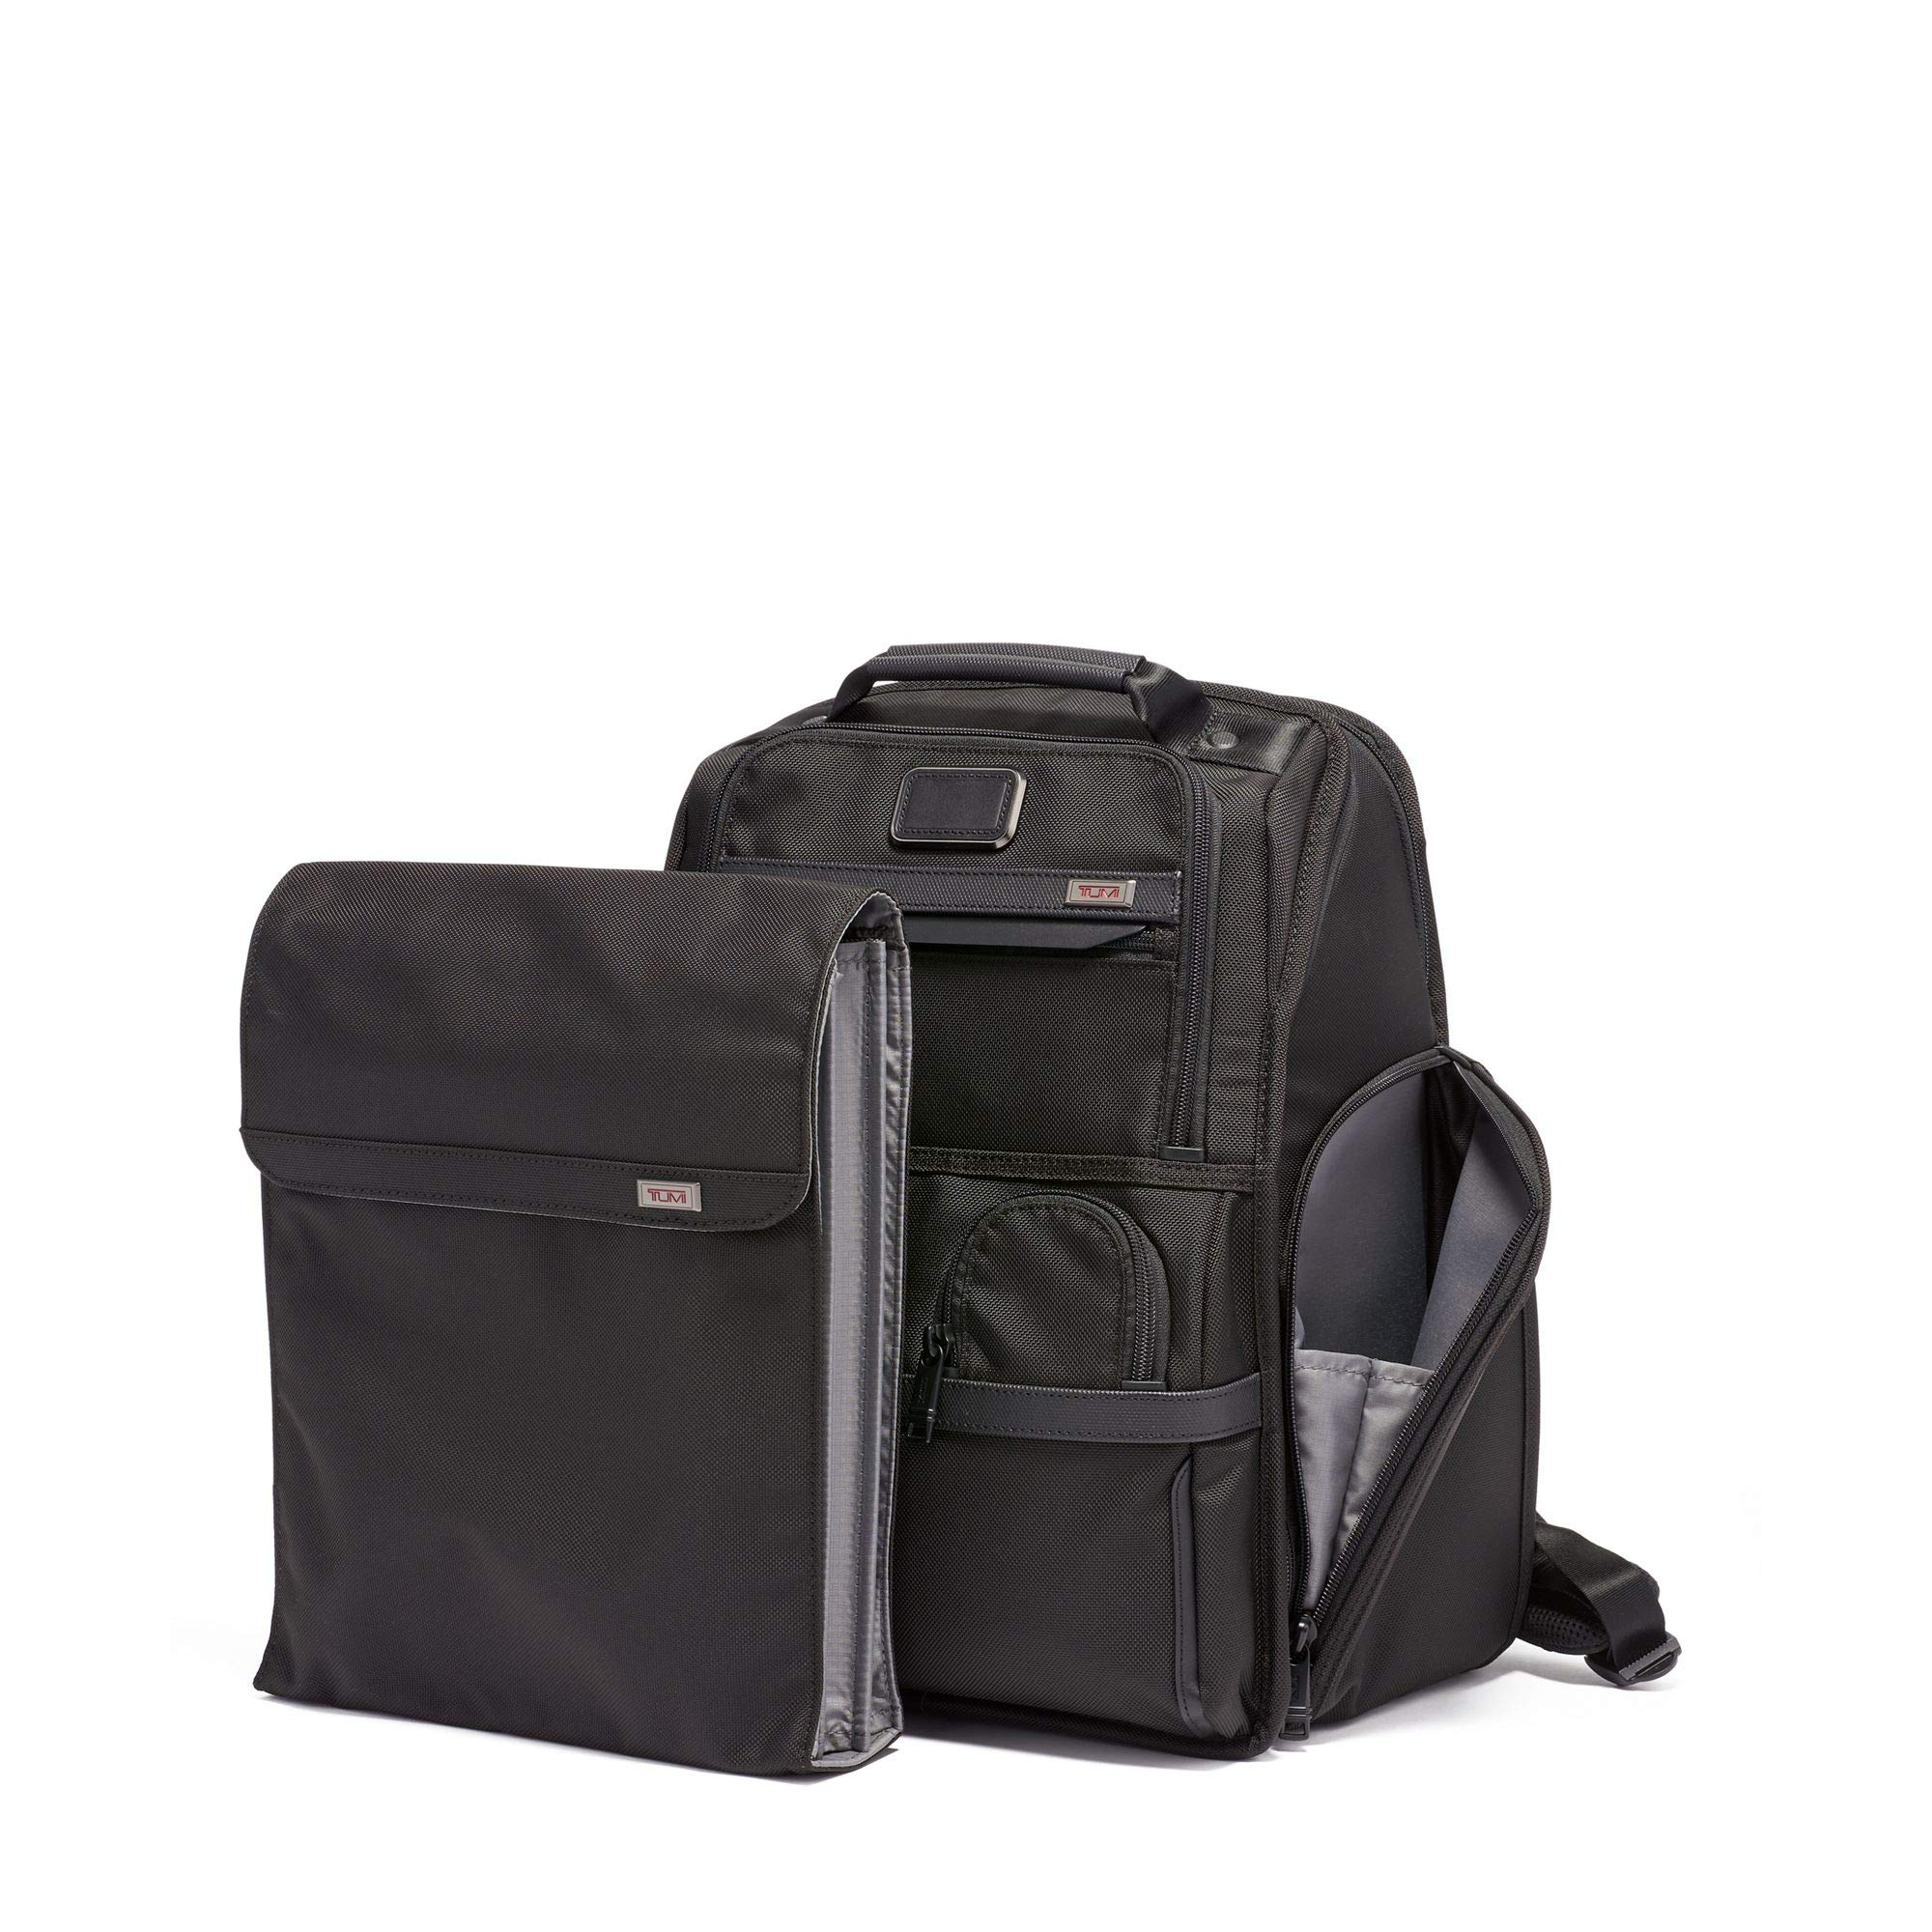 TUMI - Alpha 3 Compact Laptop Brief Pack - 15 Inch Computer Backpack for Men and Women - Black by TUMI (Image #4)